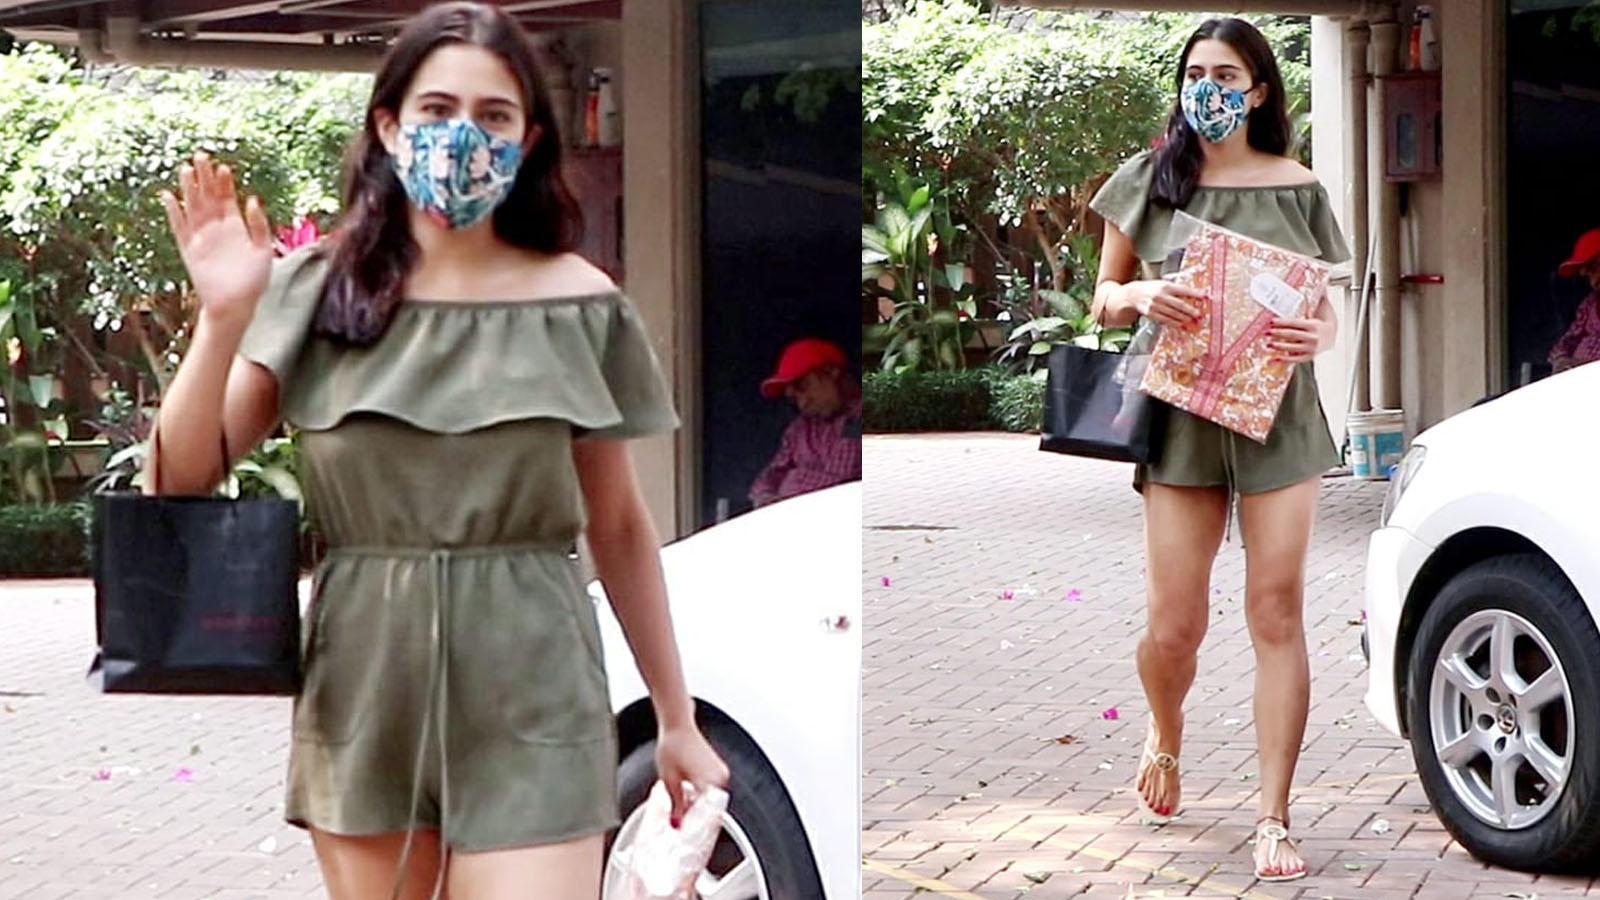 sara-ali-khan-pays-a-visit-to-saif-ali-khan-and-kareena-kapoor-khan-with-special-gifts-for-newborn-baby-brother